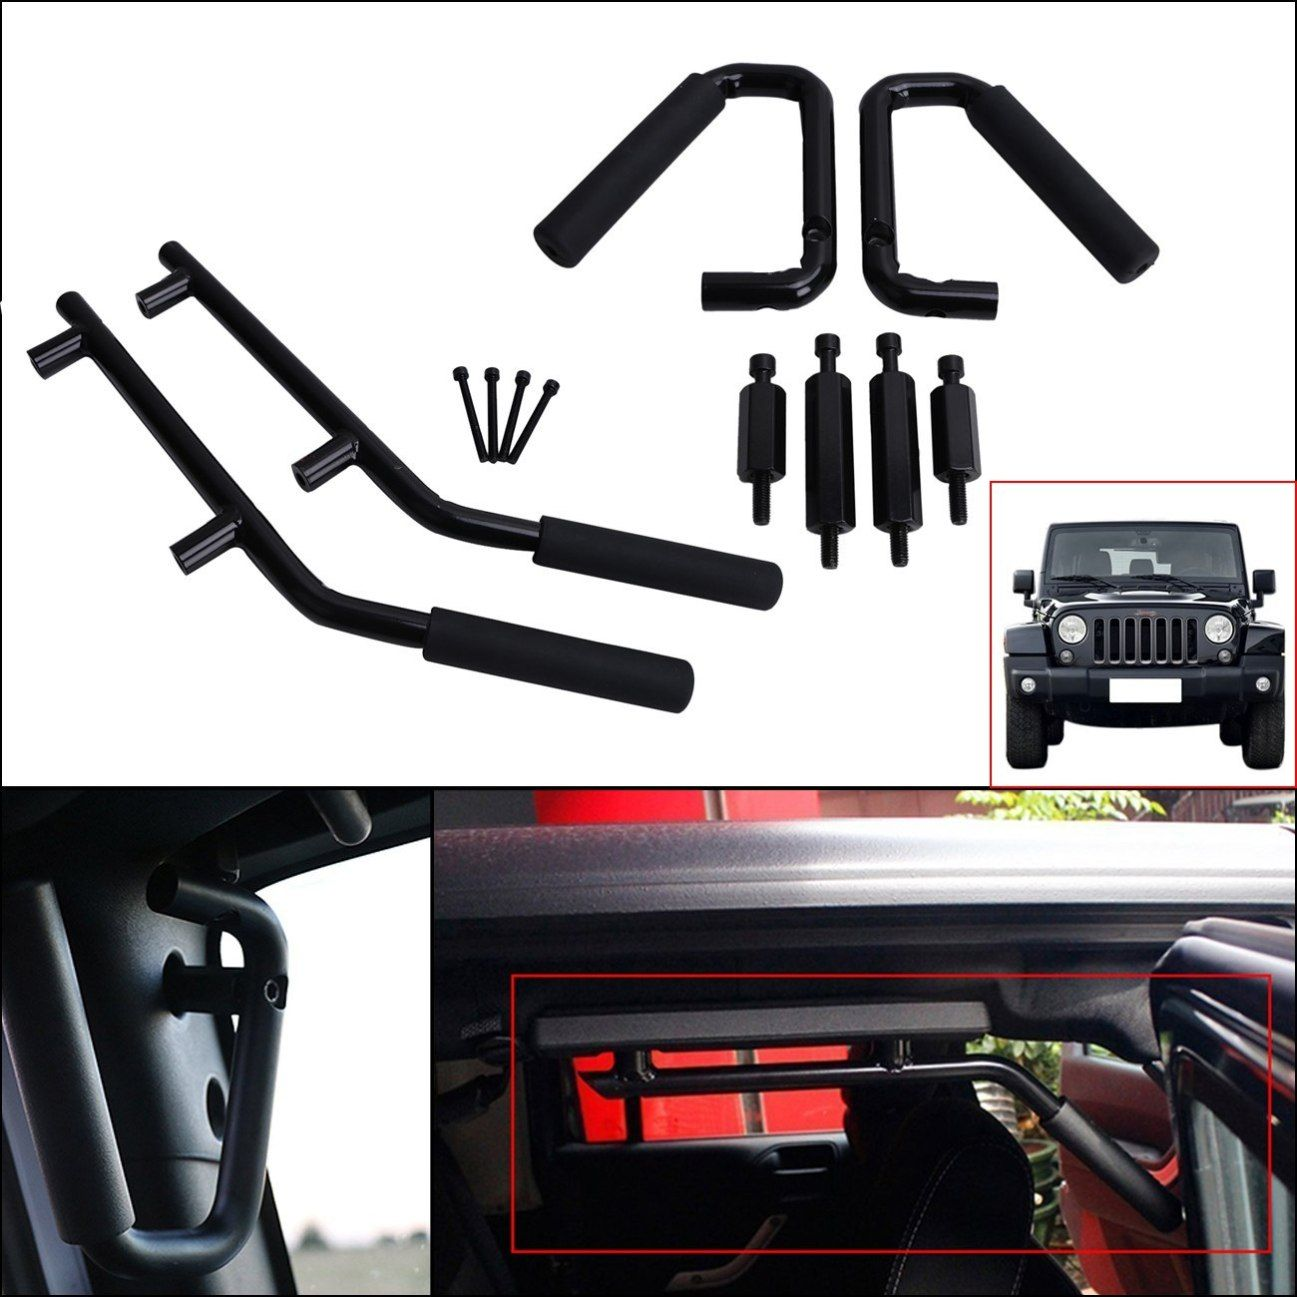 Jeep Wrangler Jk Parts Front Rear Grab Handles Roll Bar Grab Armrest Best Price Oempartscar Com Jeep Wrangler Jk Jeep Wrangler Jeep